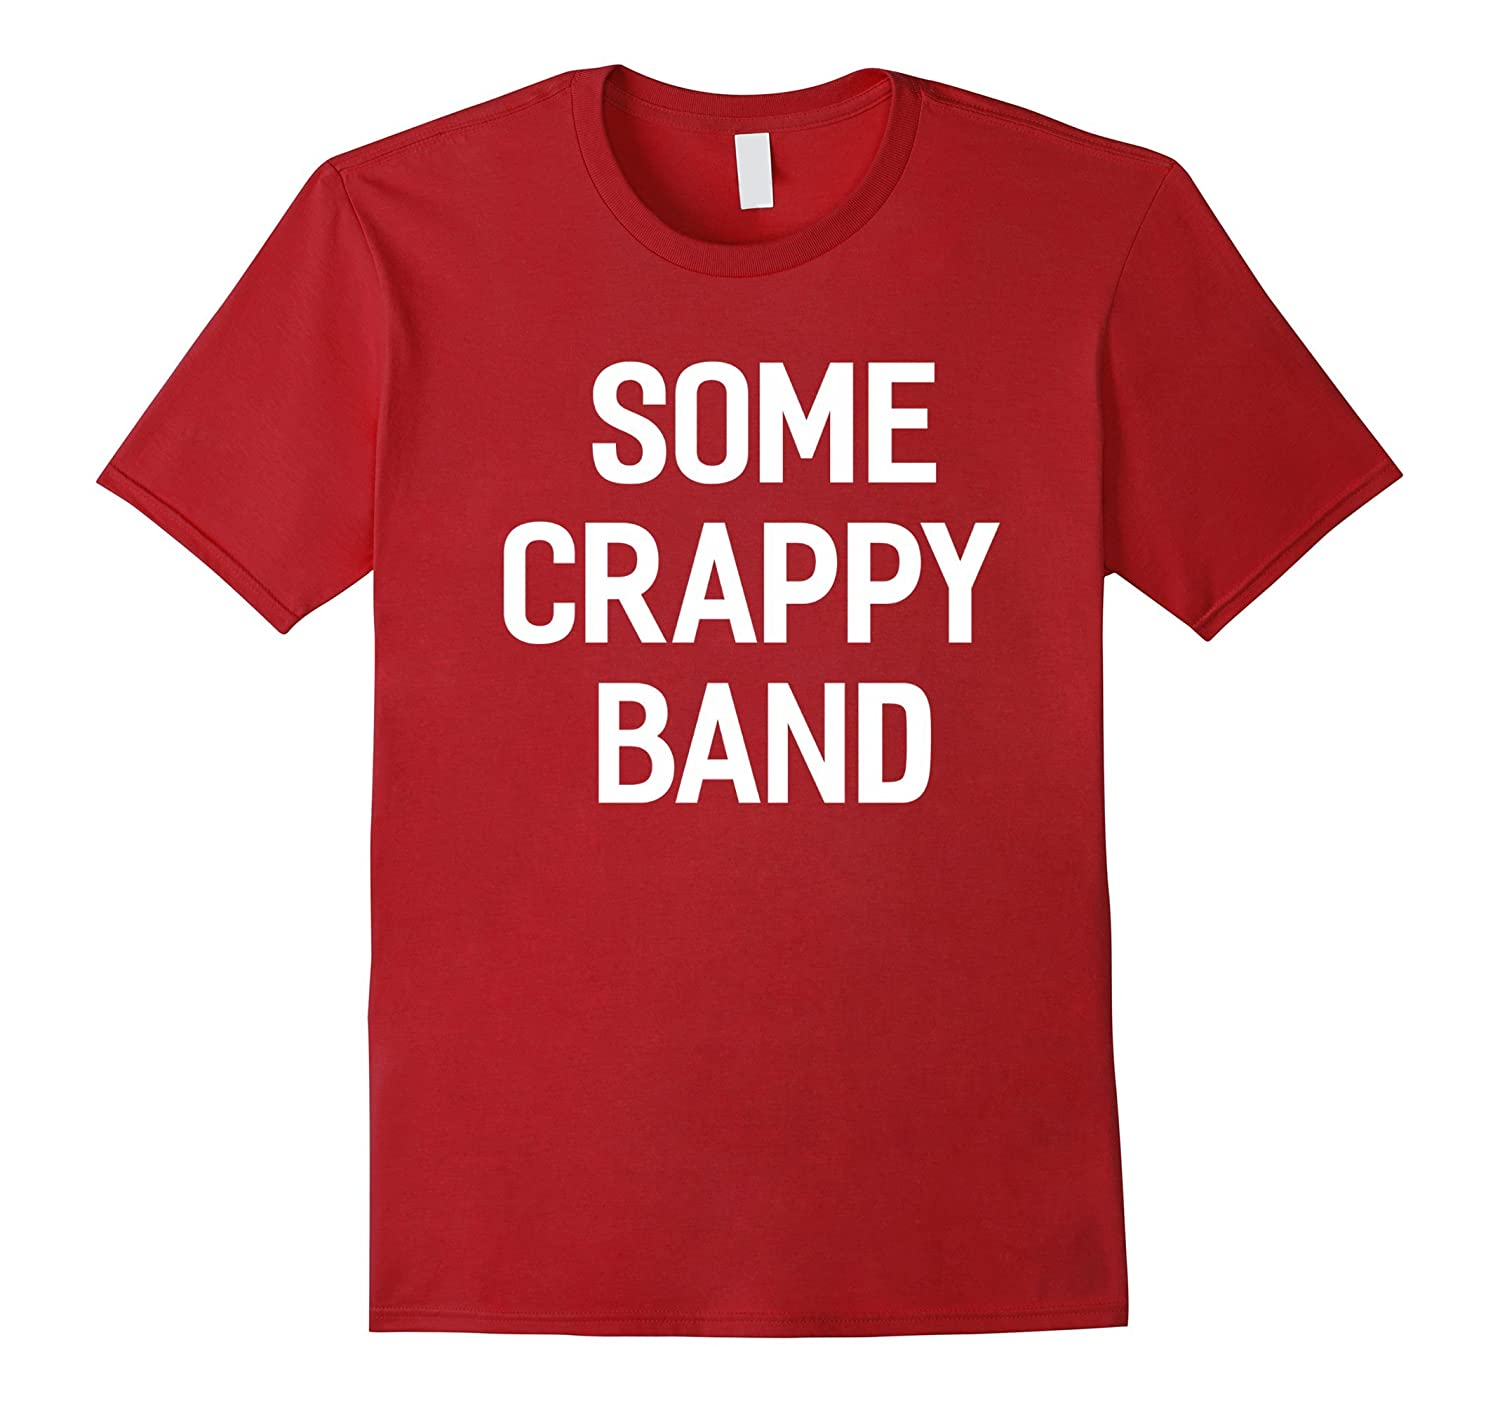 7dc3eb2ef711f Some Crappy Band Concert Music - Unisex T-shirt Funny-ANZ ⋆ Anztshirt